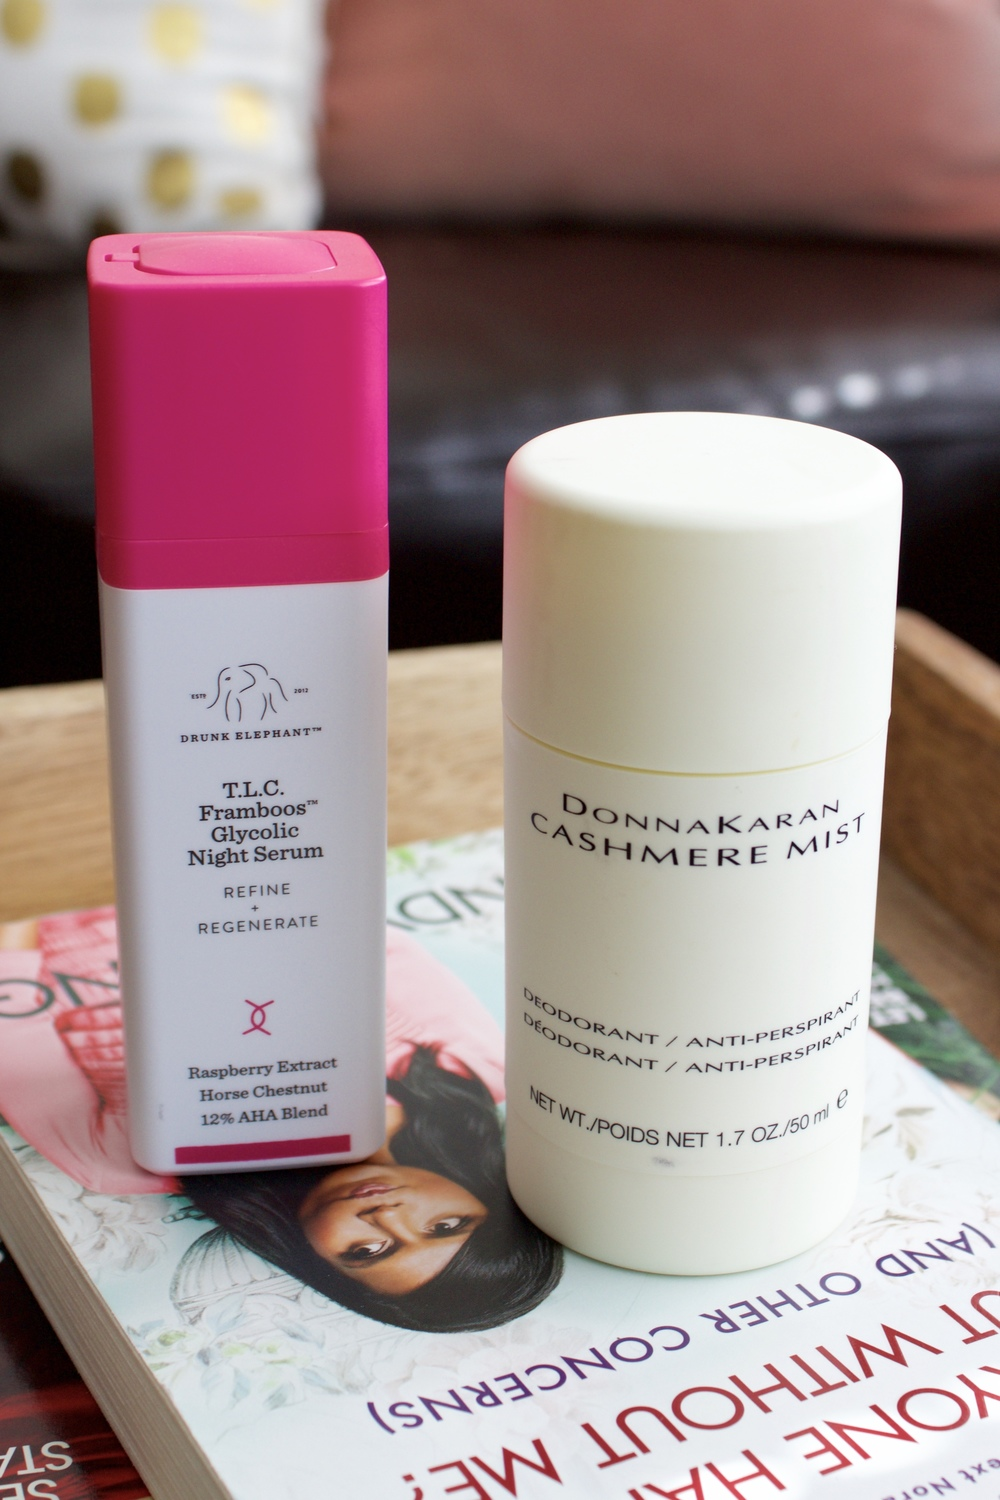 Samantha McNeil July Favorites - Night Serum and Deodorant